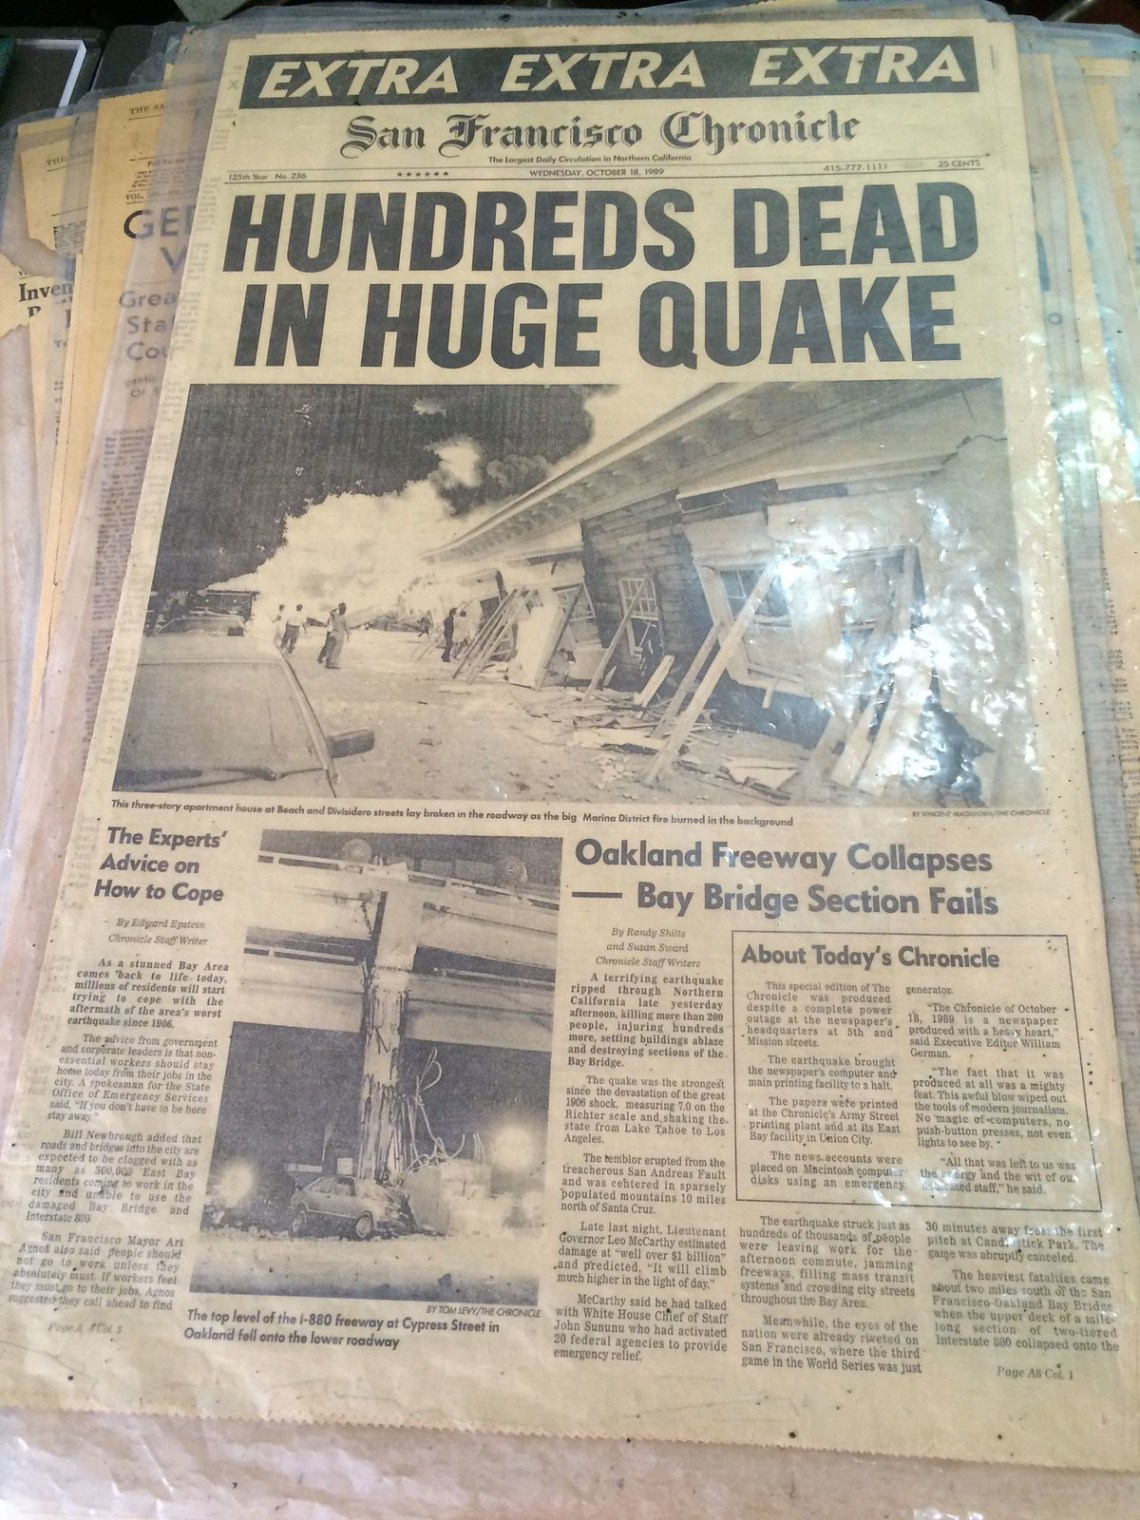 Headlines from the devastating 1989 earthquake